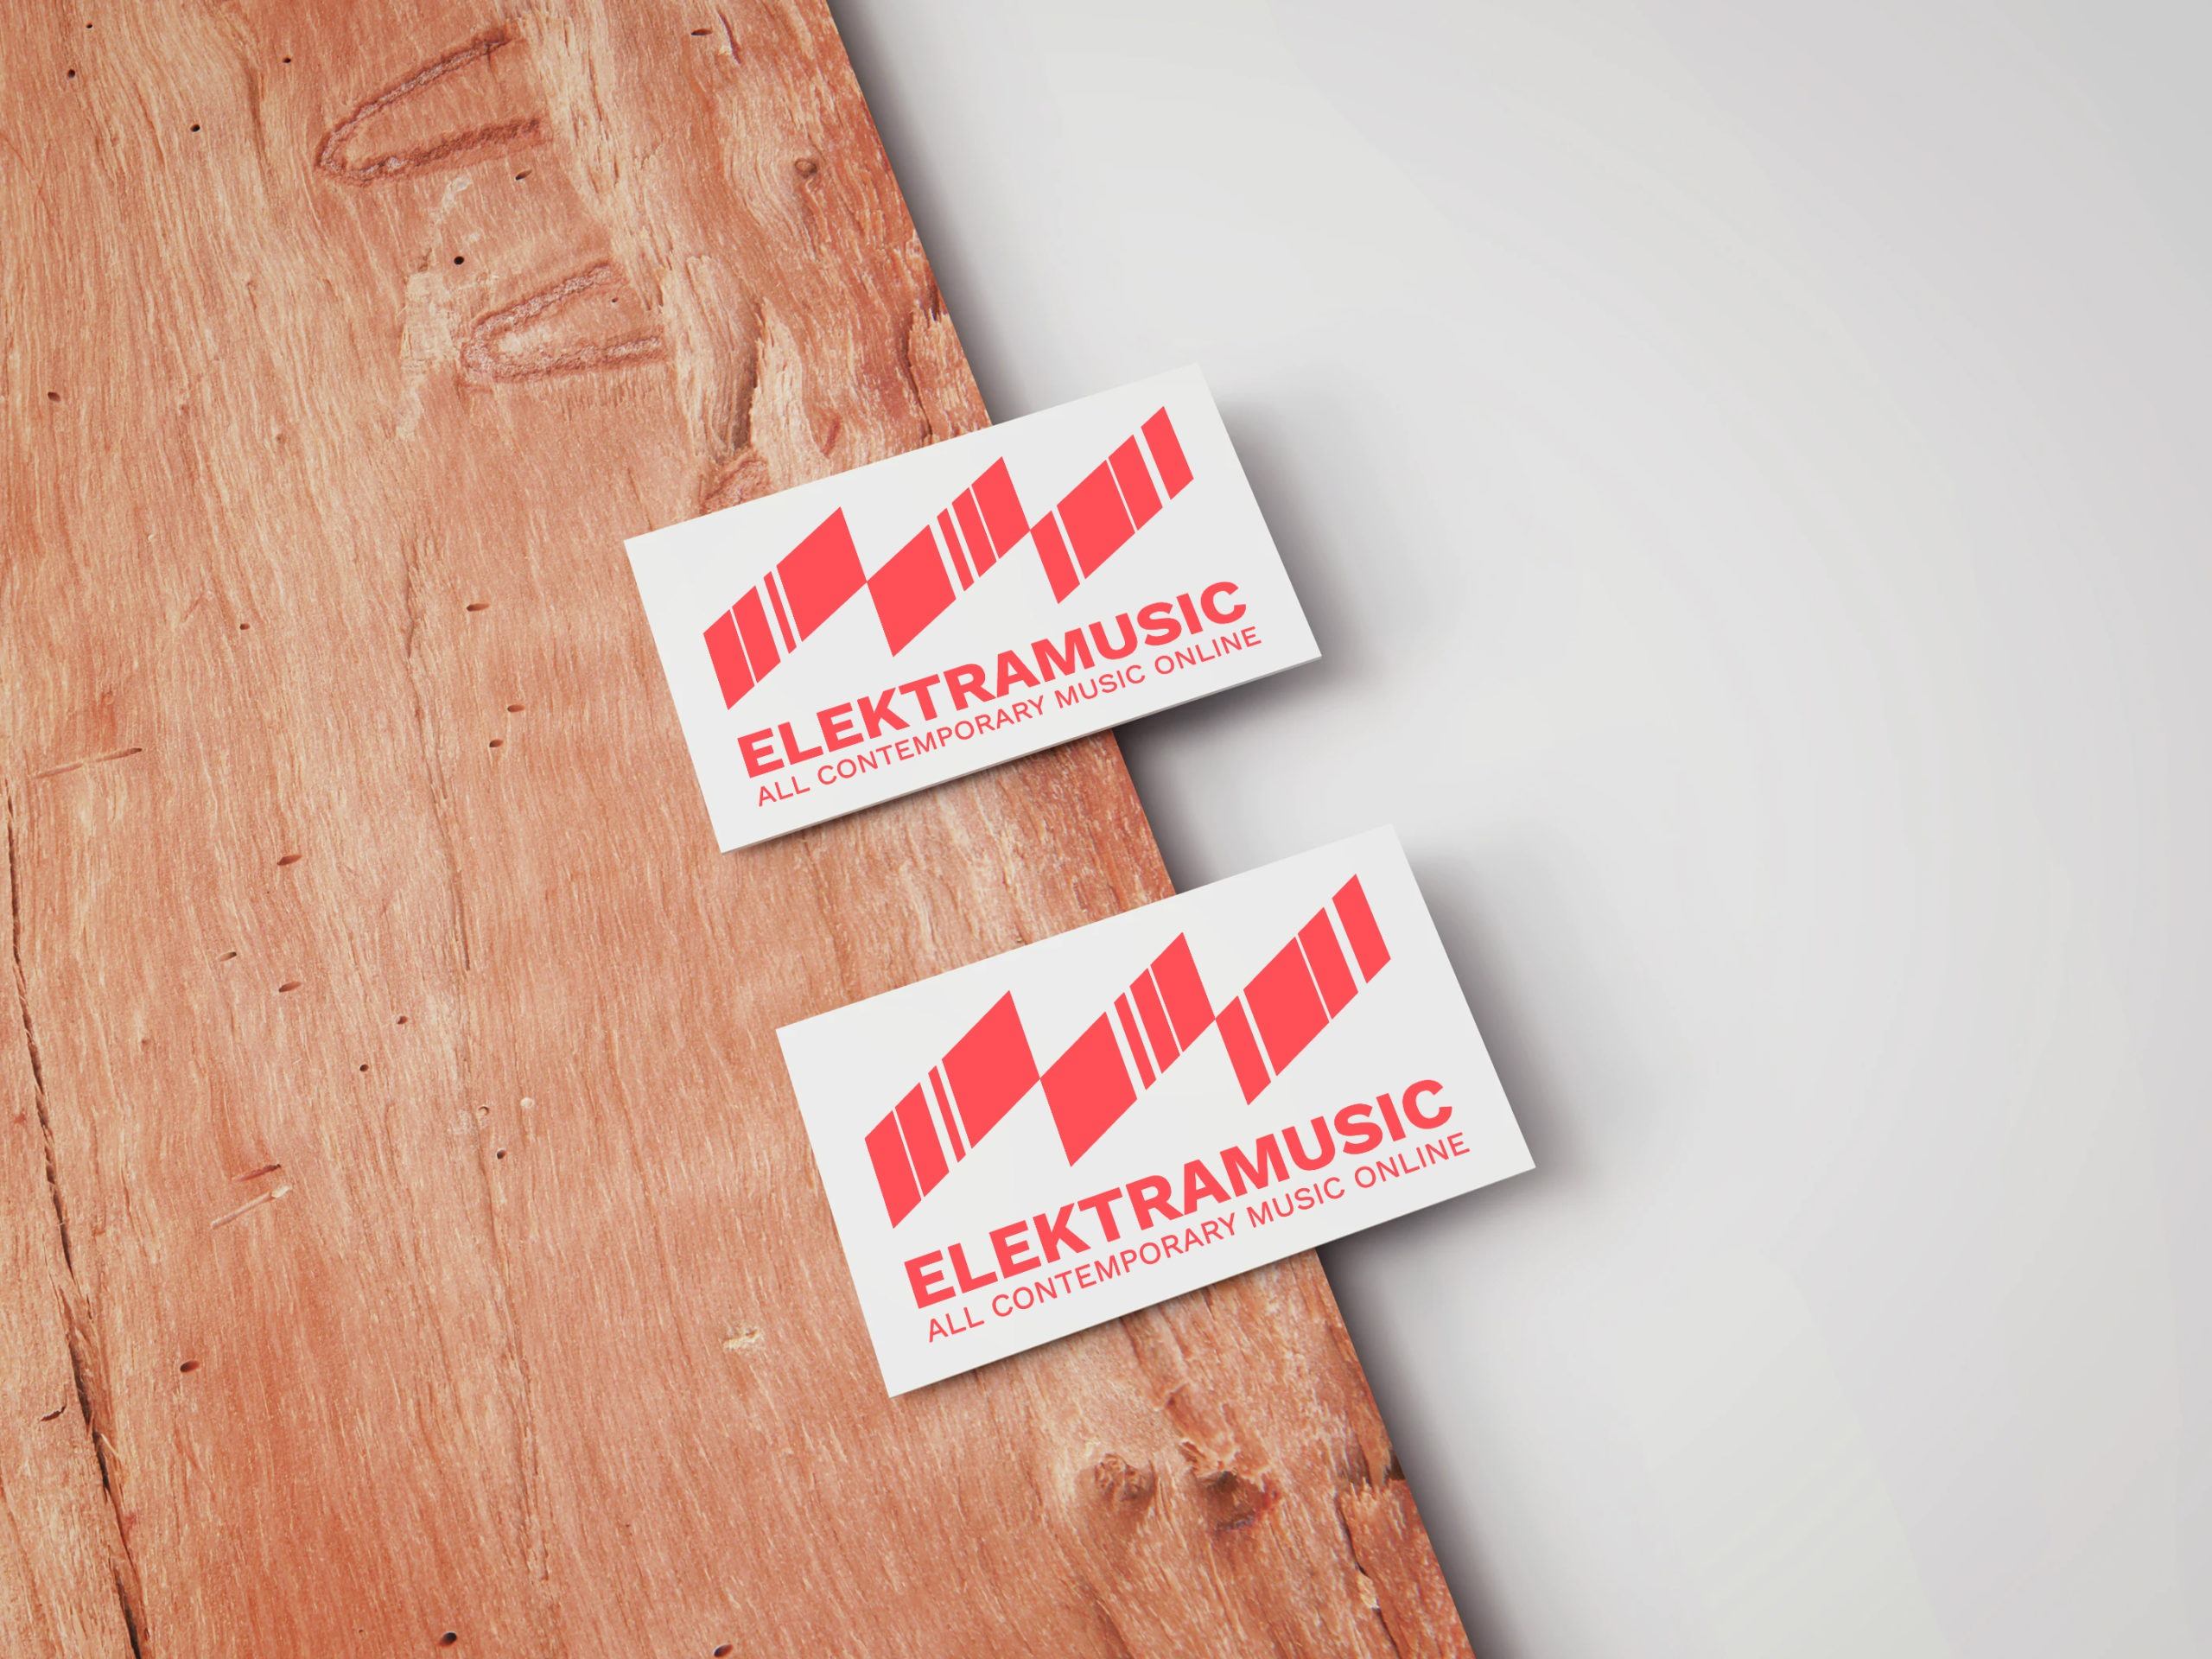 logo Elektramusic all contemporary music online